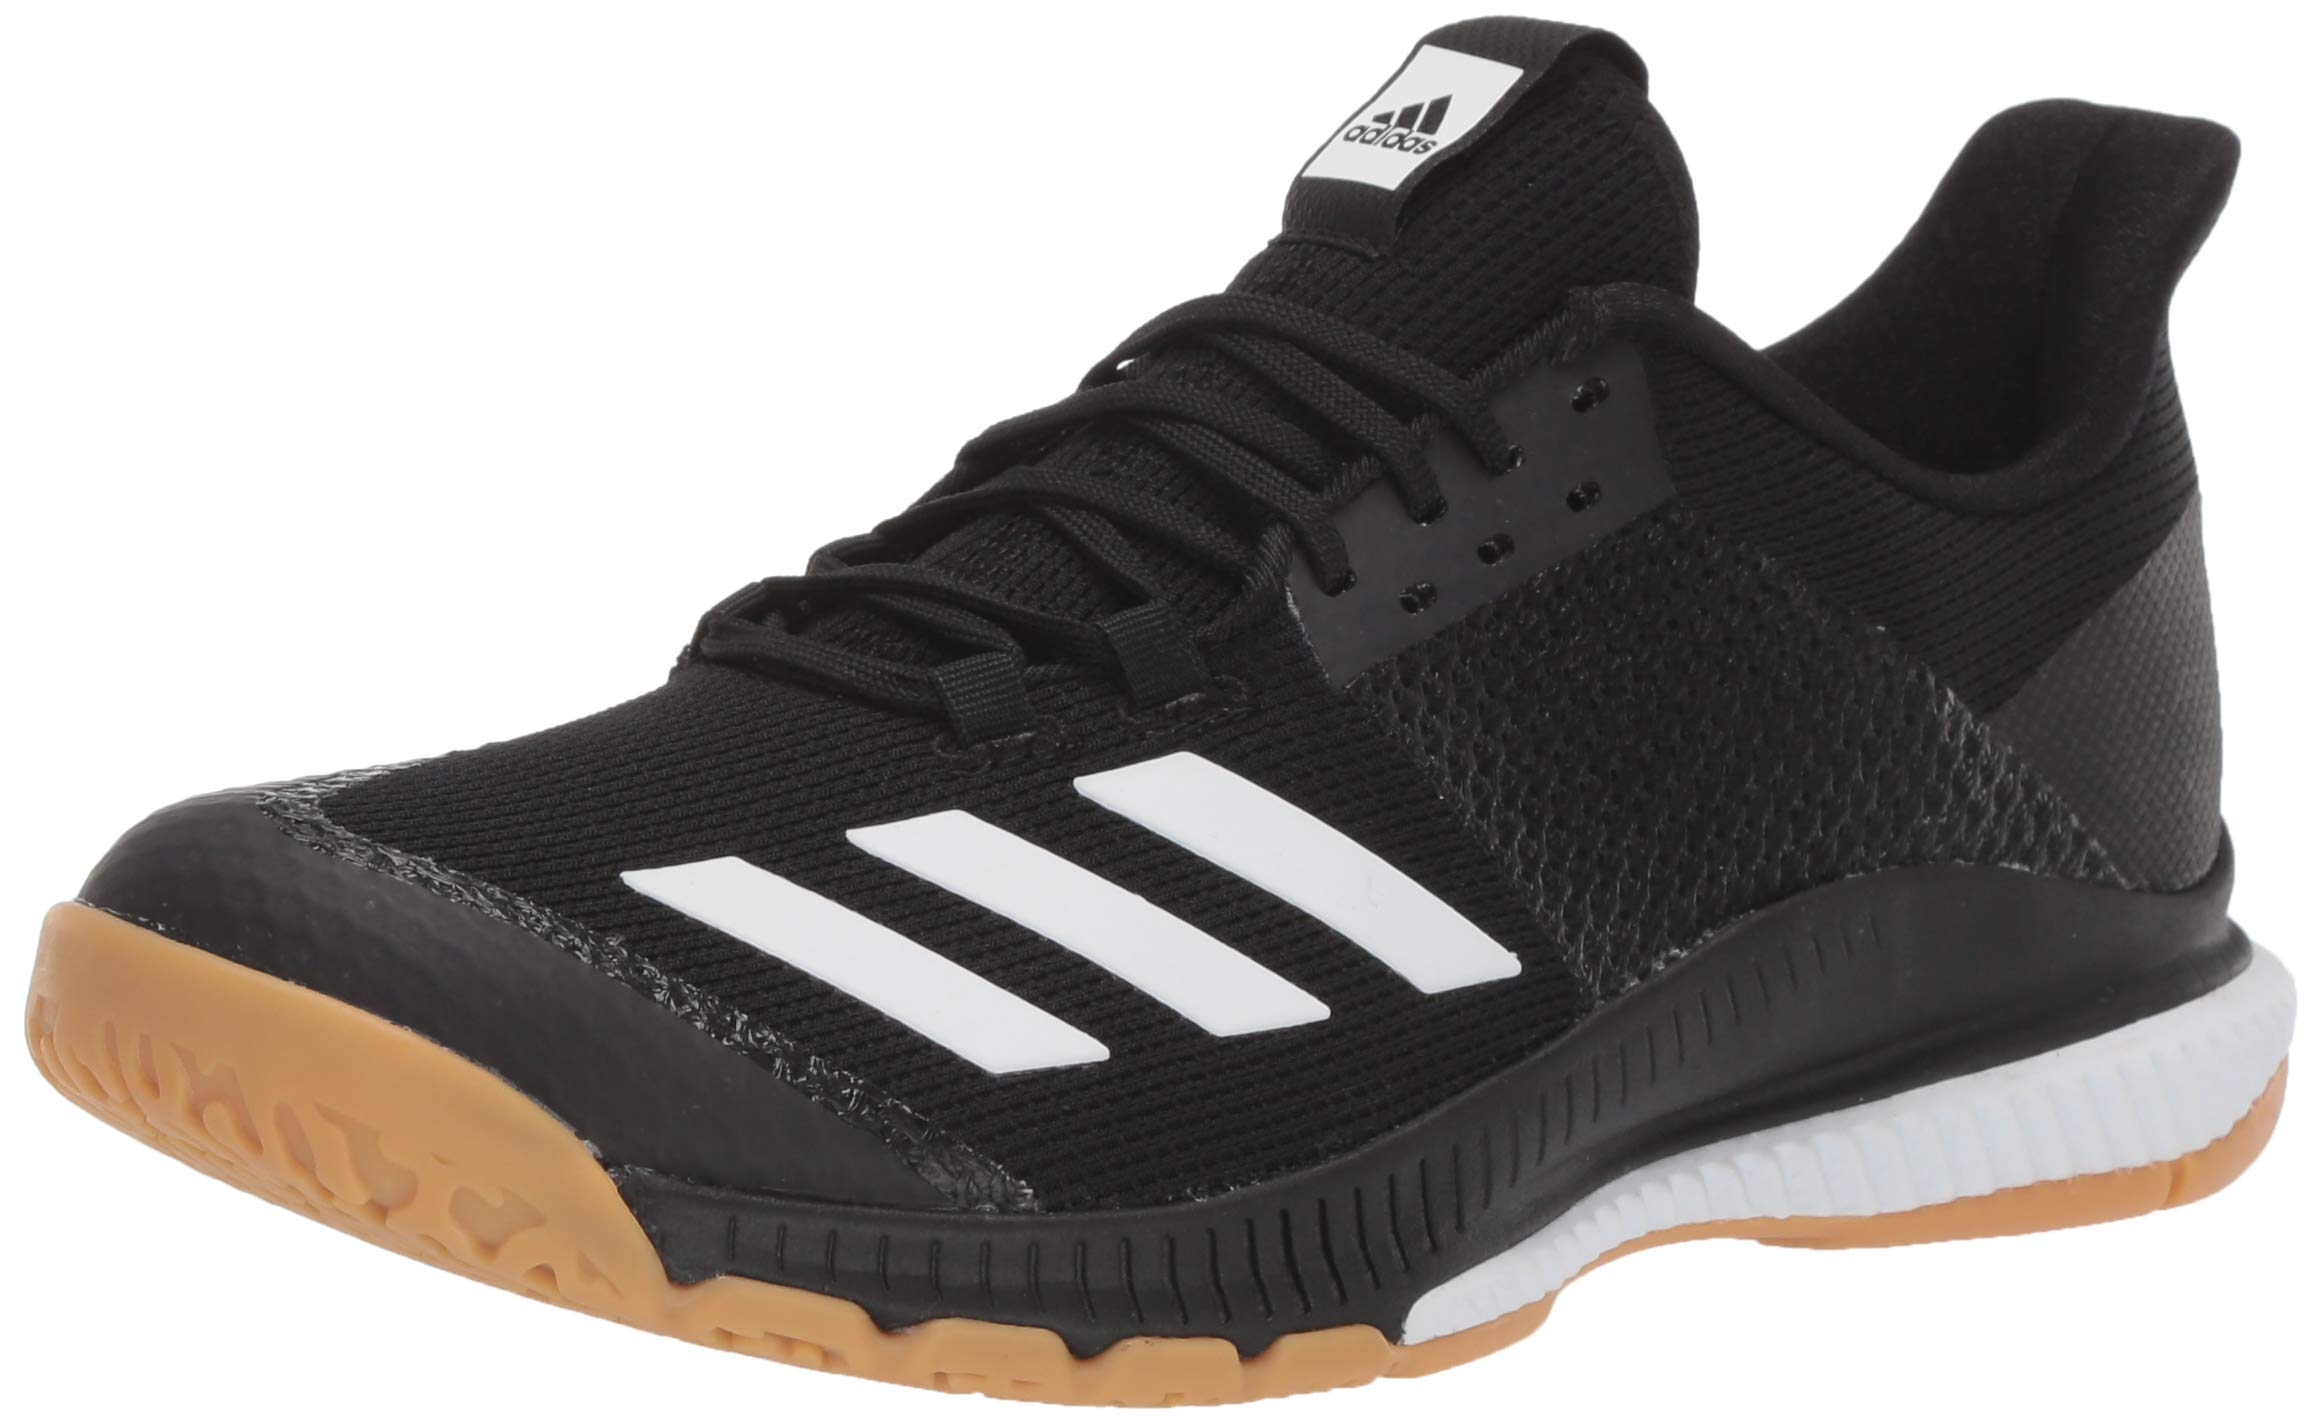 adidas Women's Crazyflight Bounce 3 Volleyball Shoe, Black/White/Gum, 5 M US